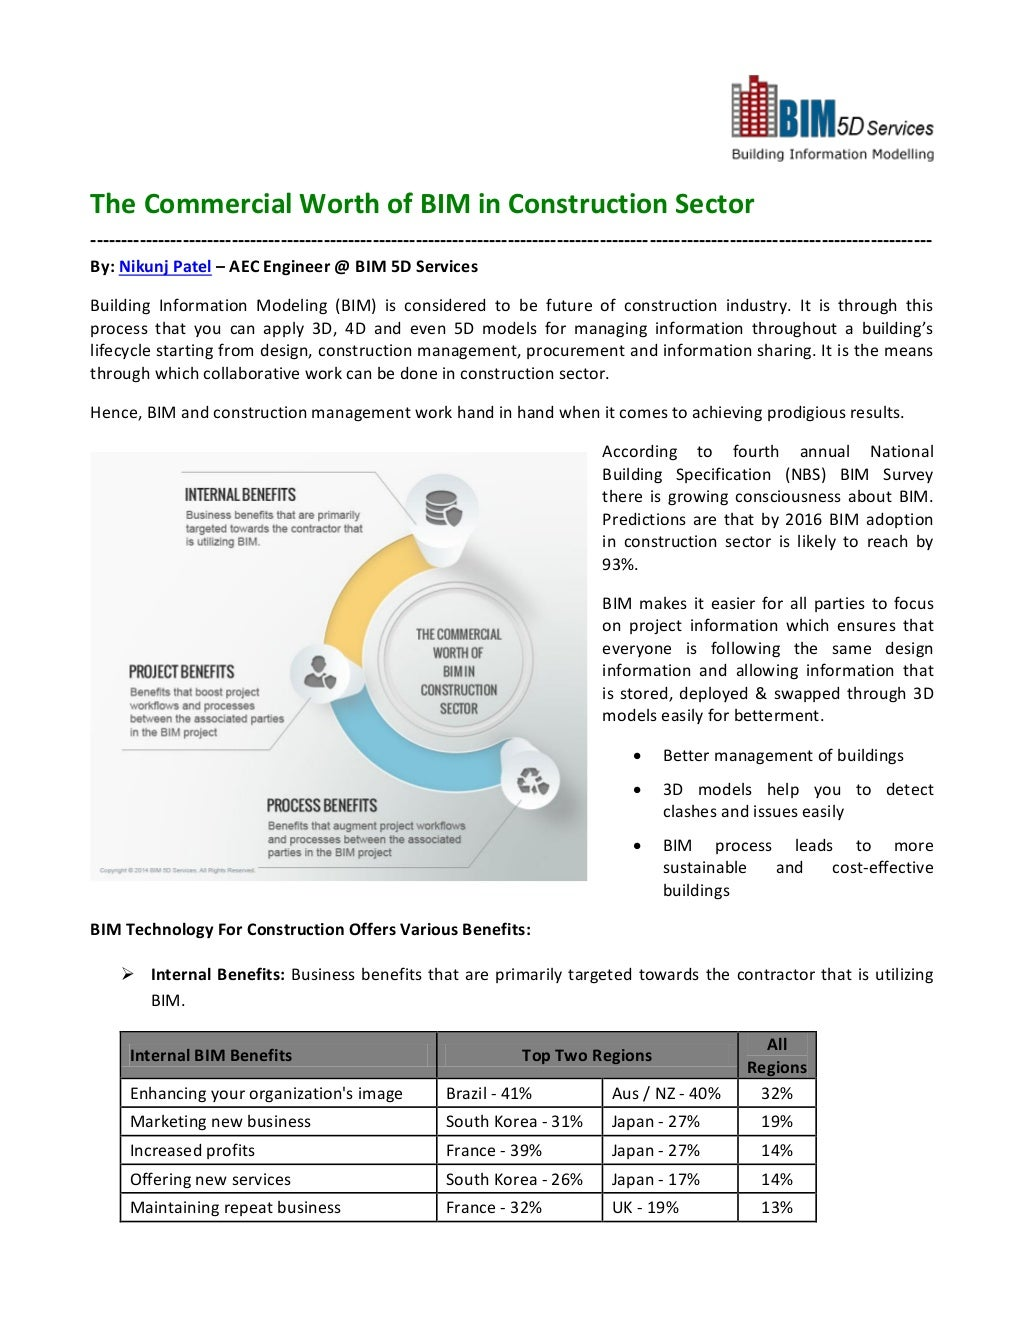 The Commercial Worth of BIM in Construction Sector